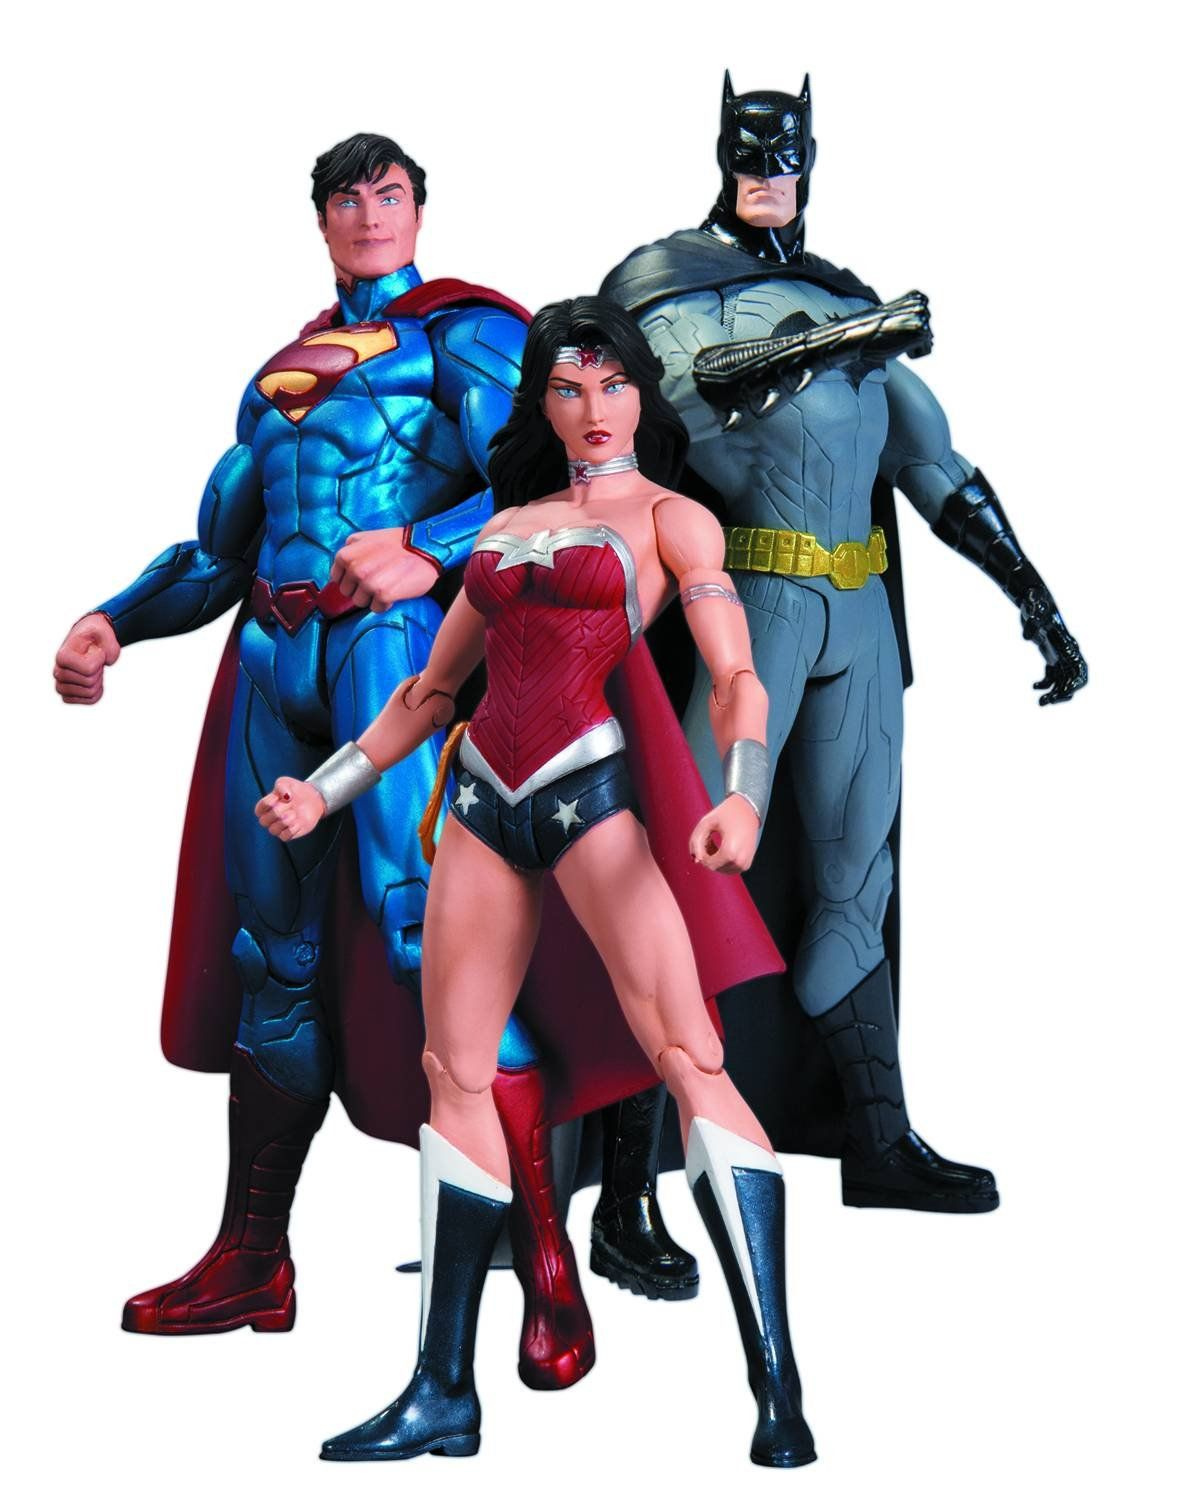 DC The New 52 Trinity War Action Figure 3-Pack by Diamond Comic Dist.